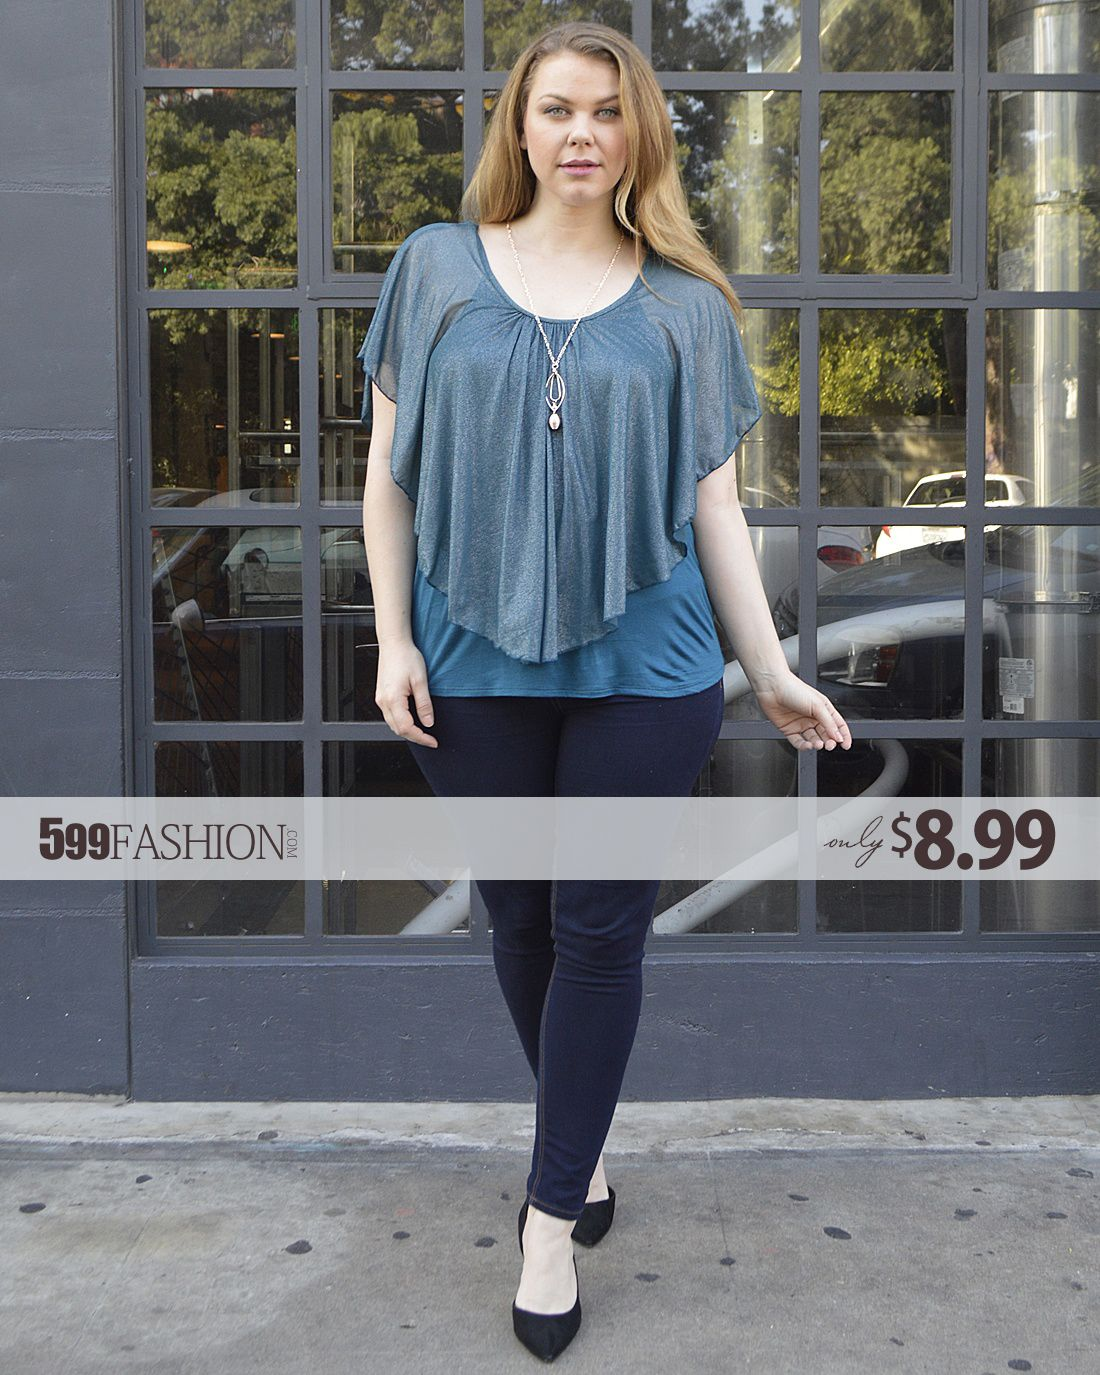 New Pus Tops, Shrugs & Dresses!!! Everything Under $10 ...